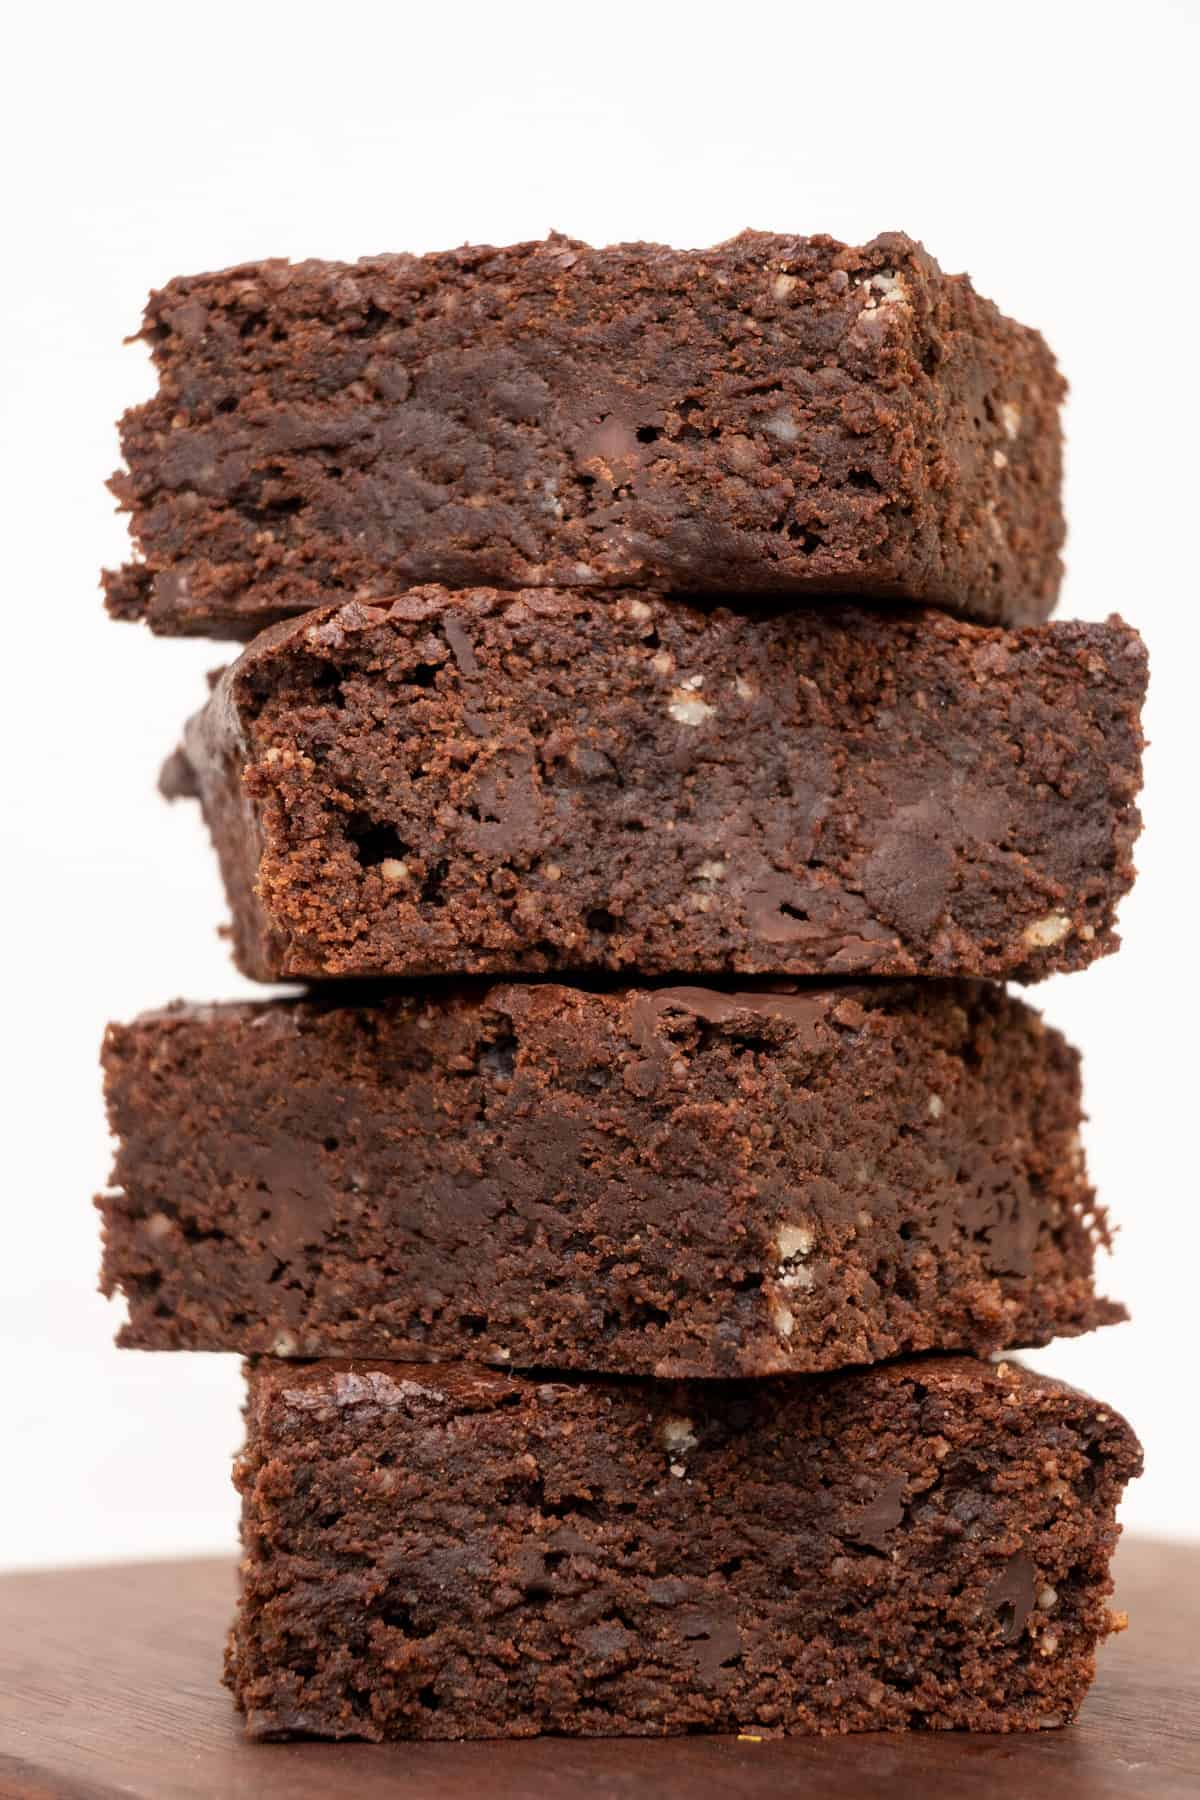 A stack of four vegan chocolate brownies seen from the side.